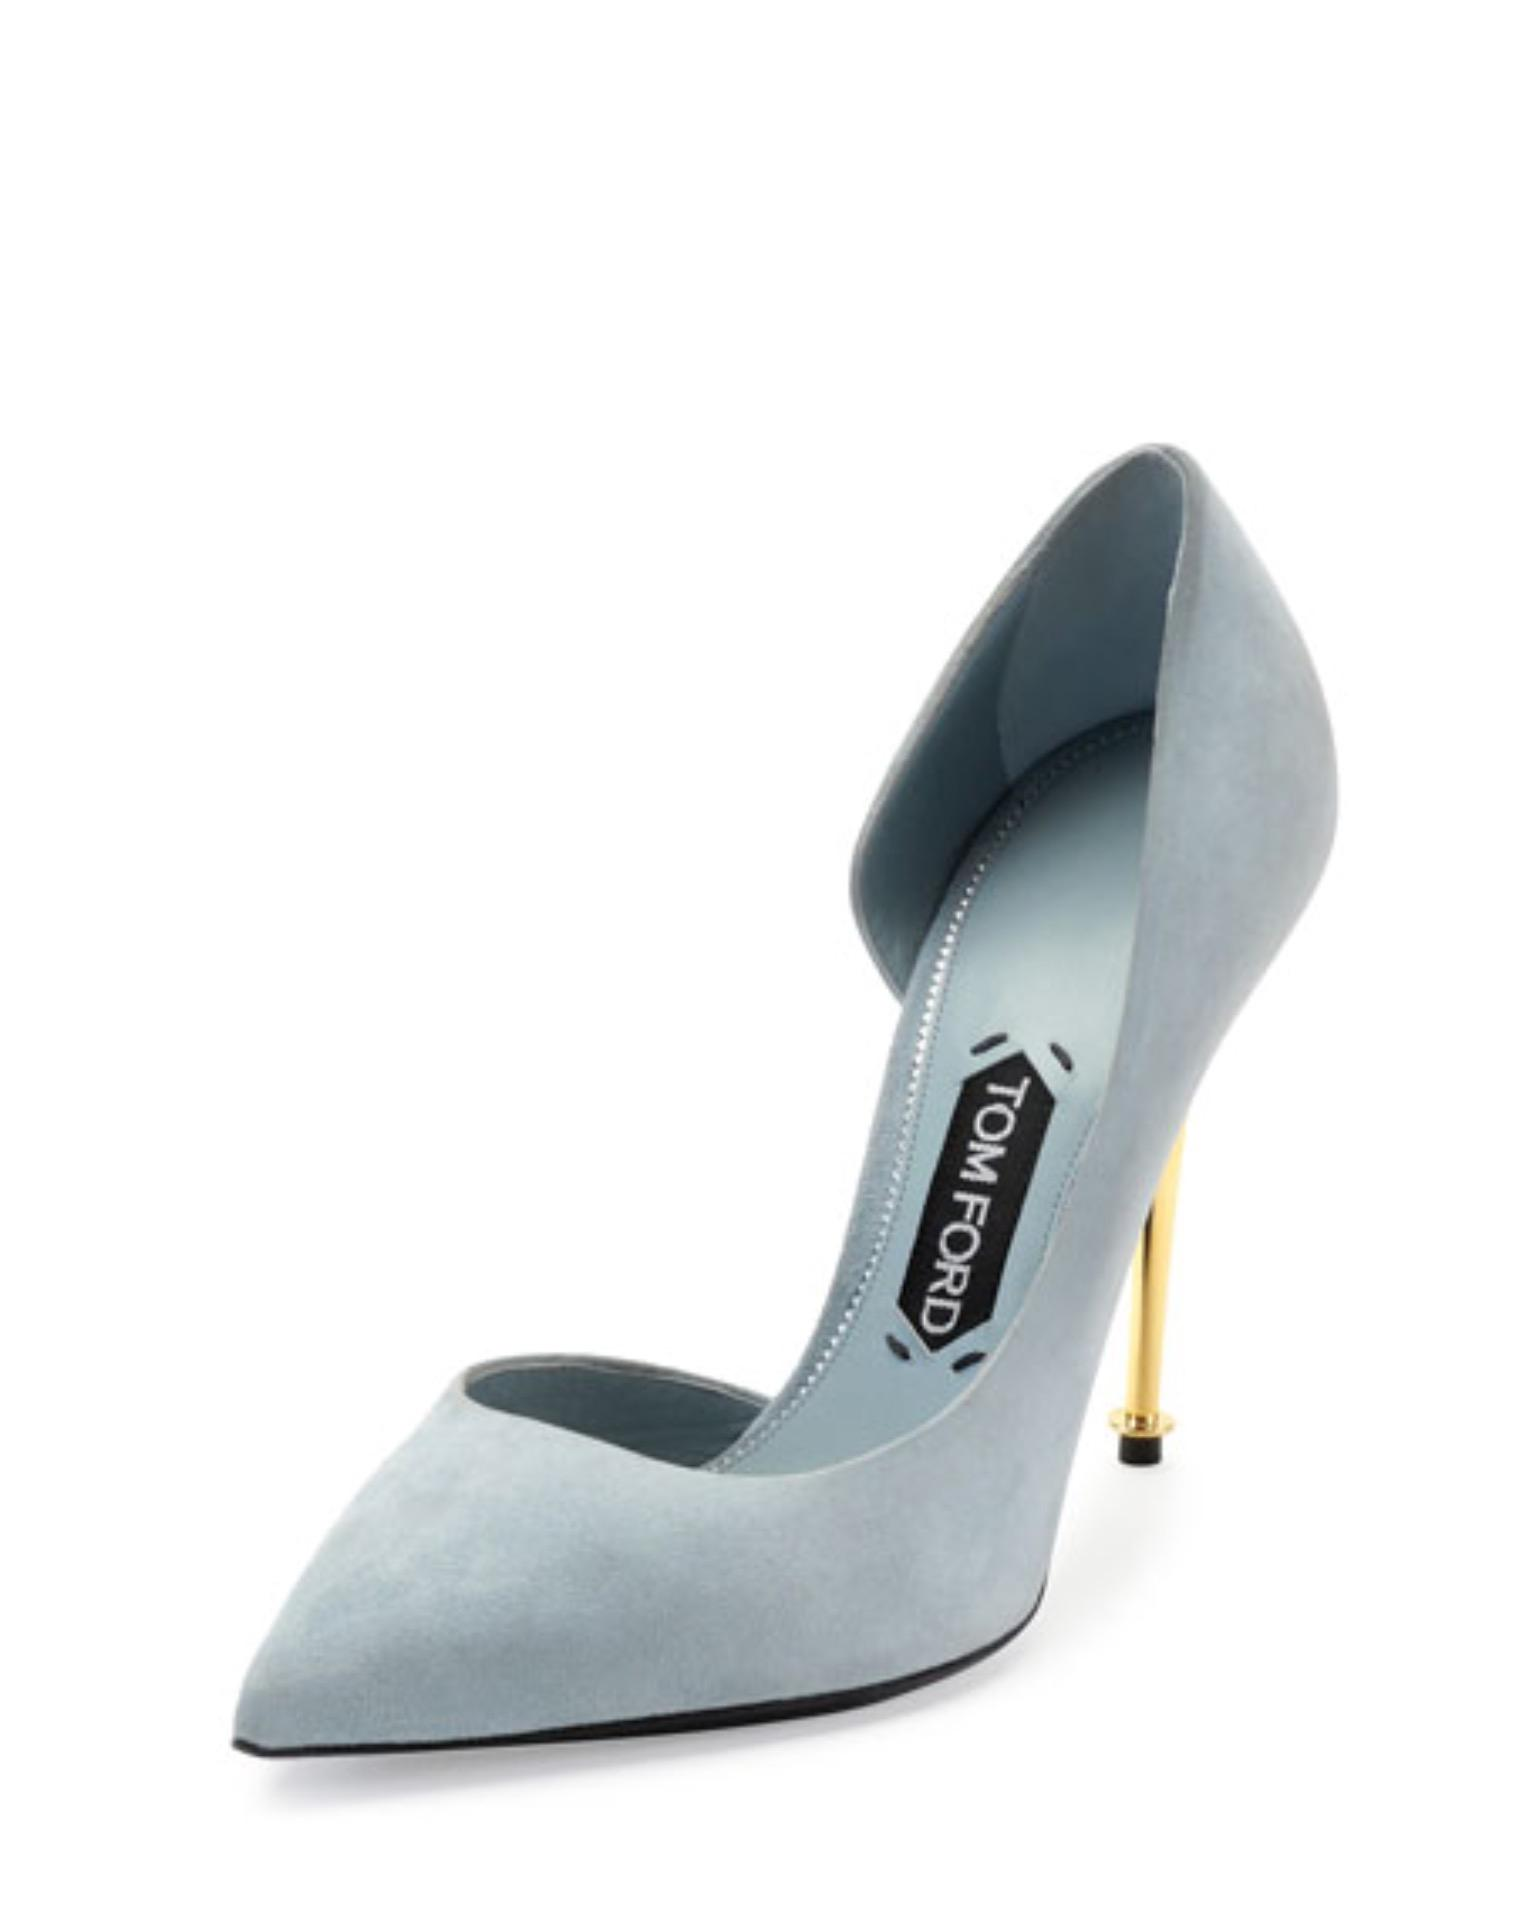 Tom Ford Suede D'Orsay Pumps popular sale online YhELb